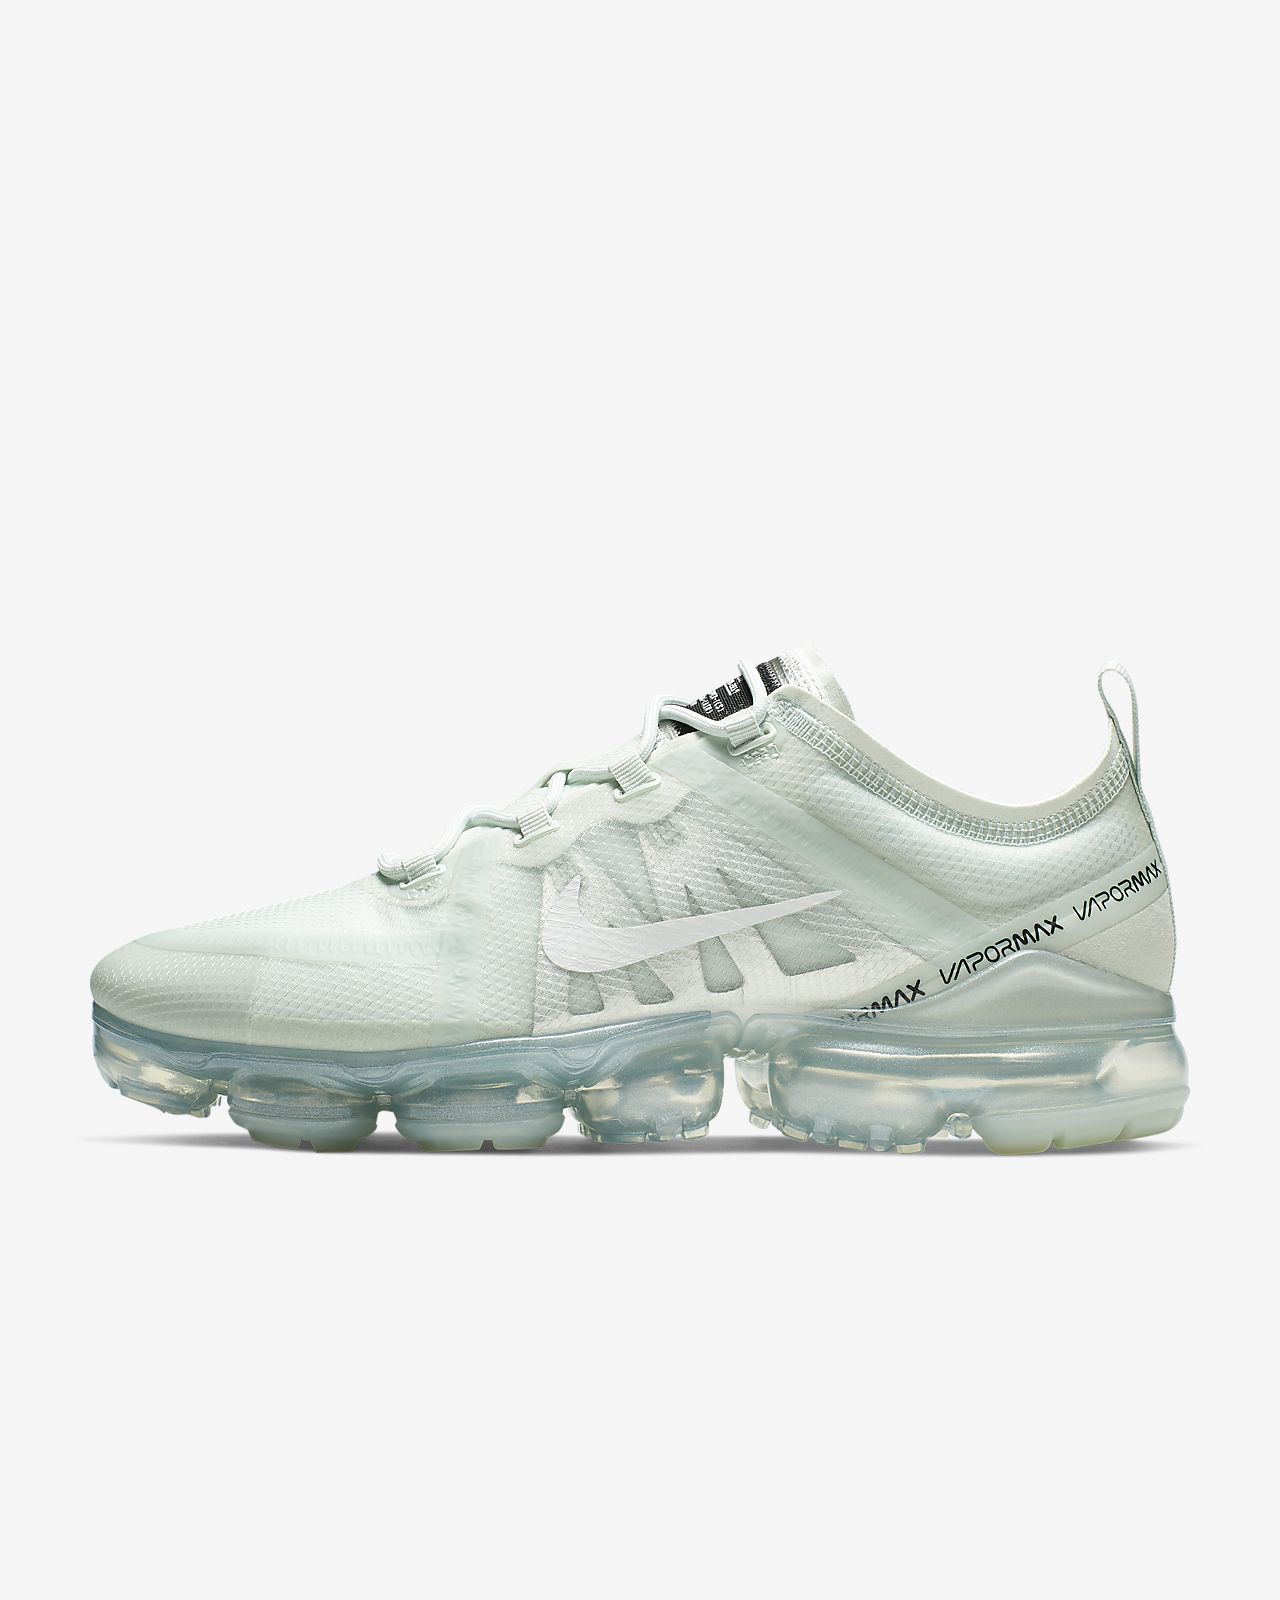 reputable site d3a78 f1735 Nike Air VaporMax 2019 Shoe